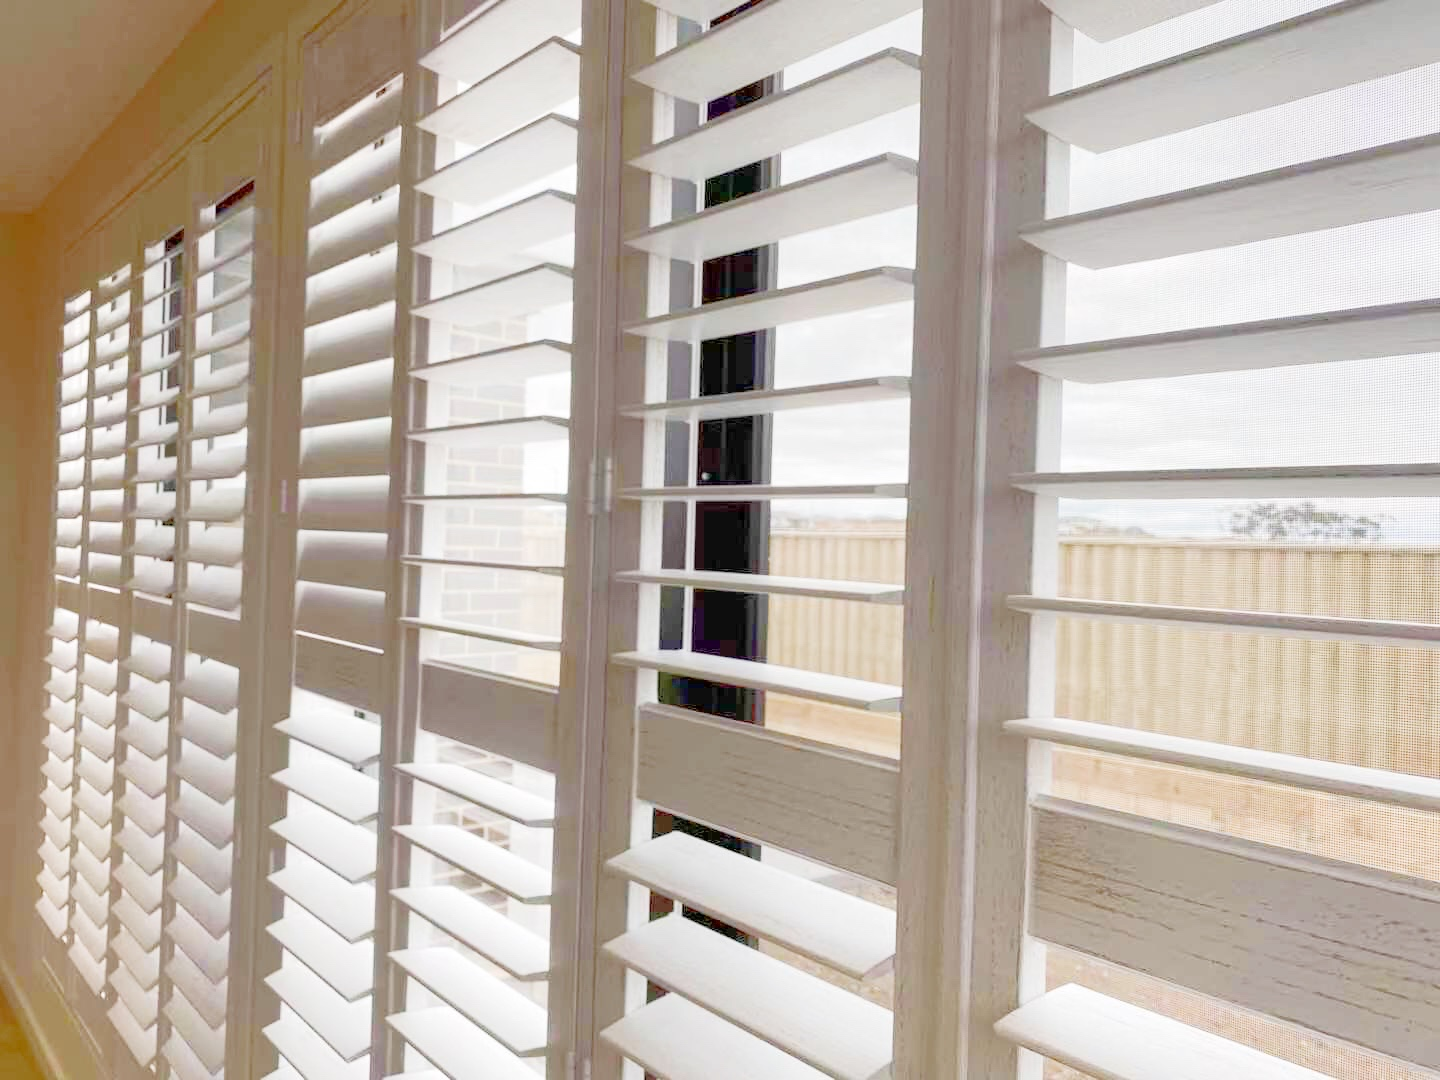 Real client photo of window furnishings